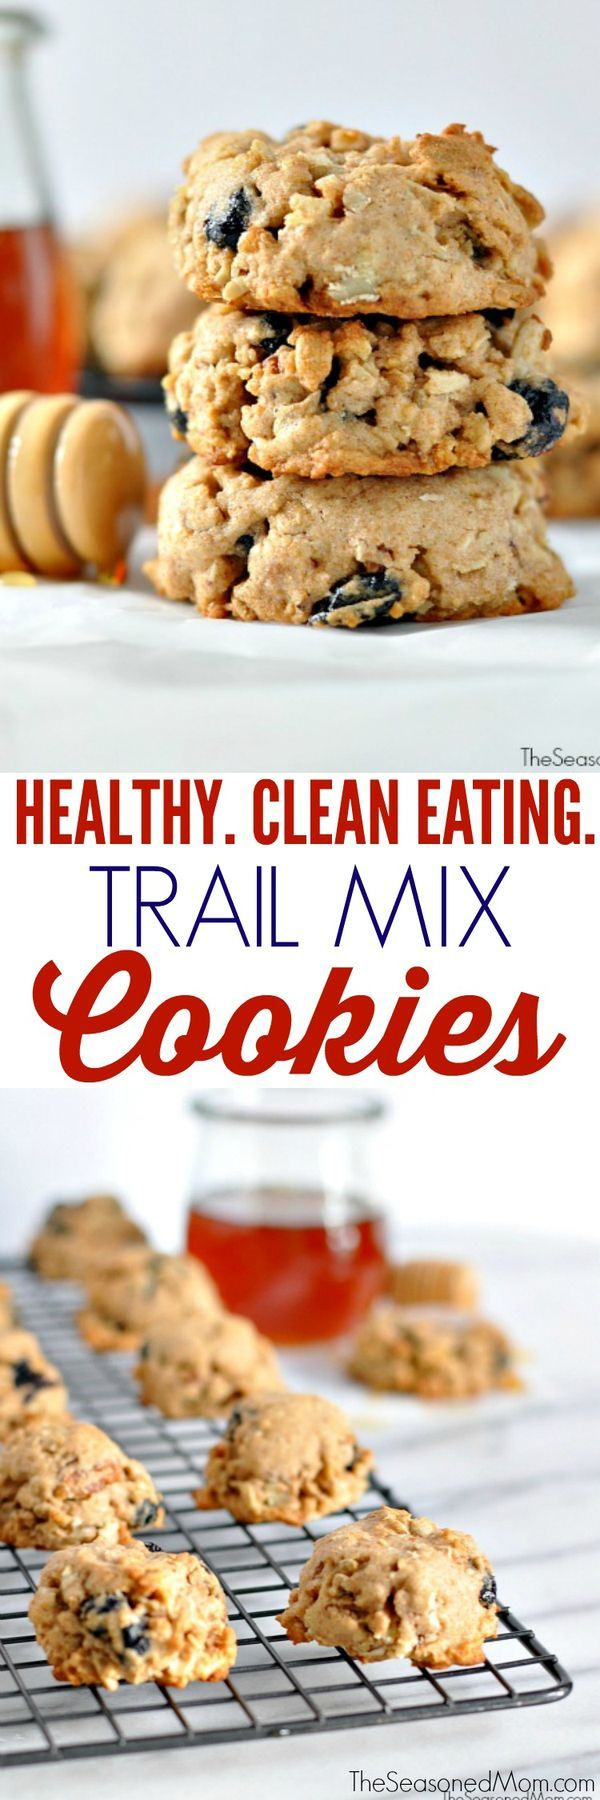 Healthy Trail Mix Cookies Recipe